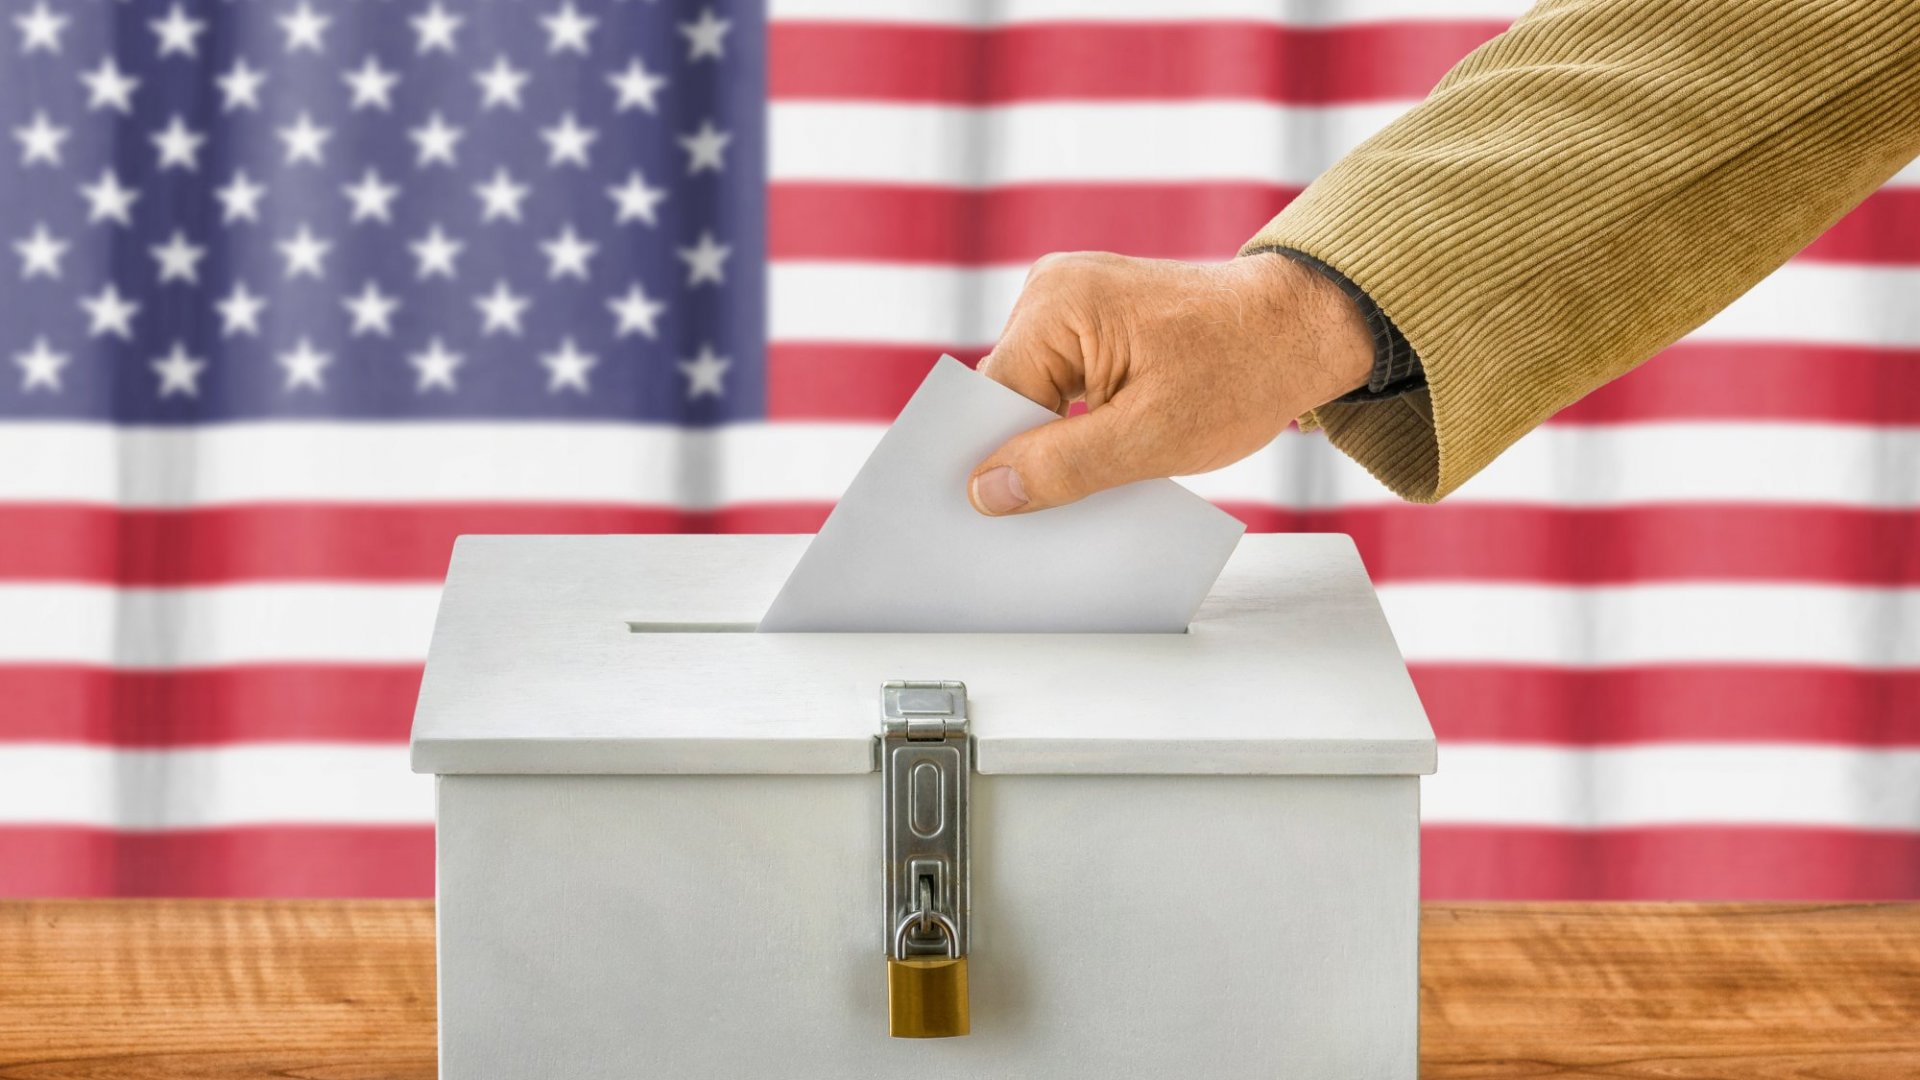 Science: Your Vote Matters